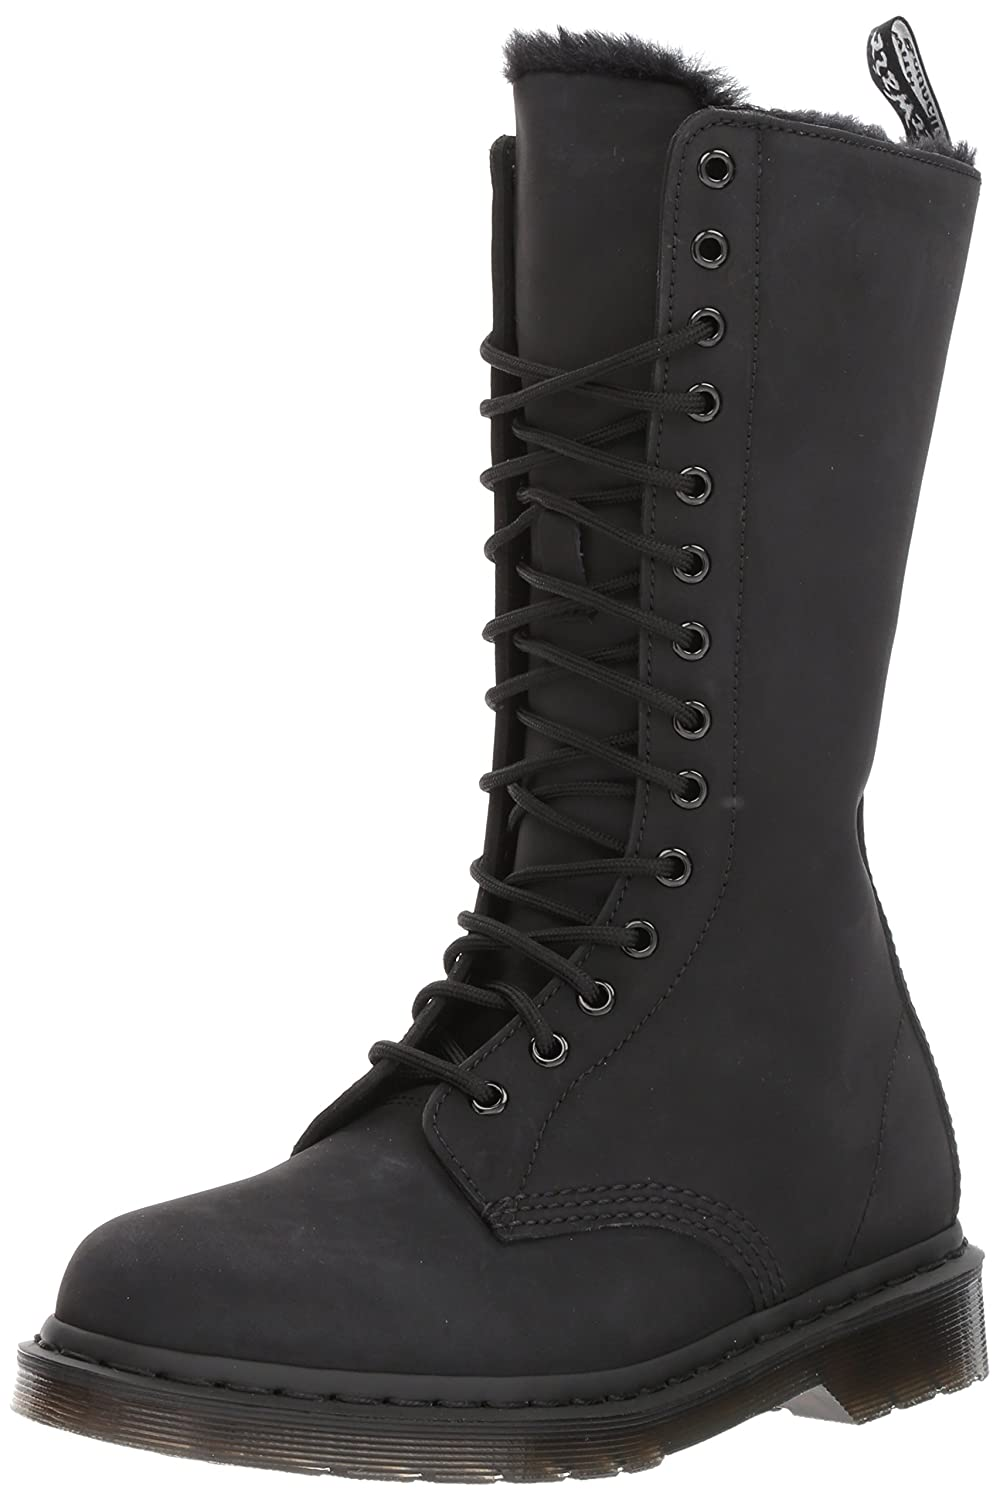 Dr. Martens Women's 1B99 FL Fashion Boot B01MZ4GIQC 8 Medium UK (10 US)|Black Cascade Split